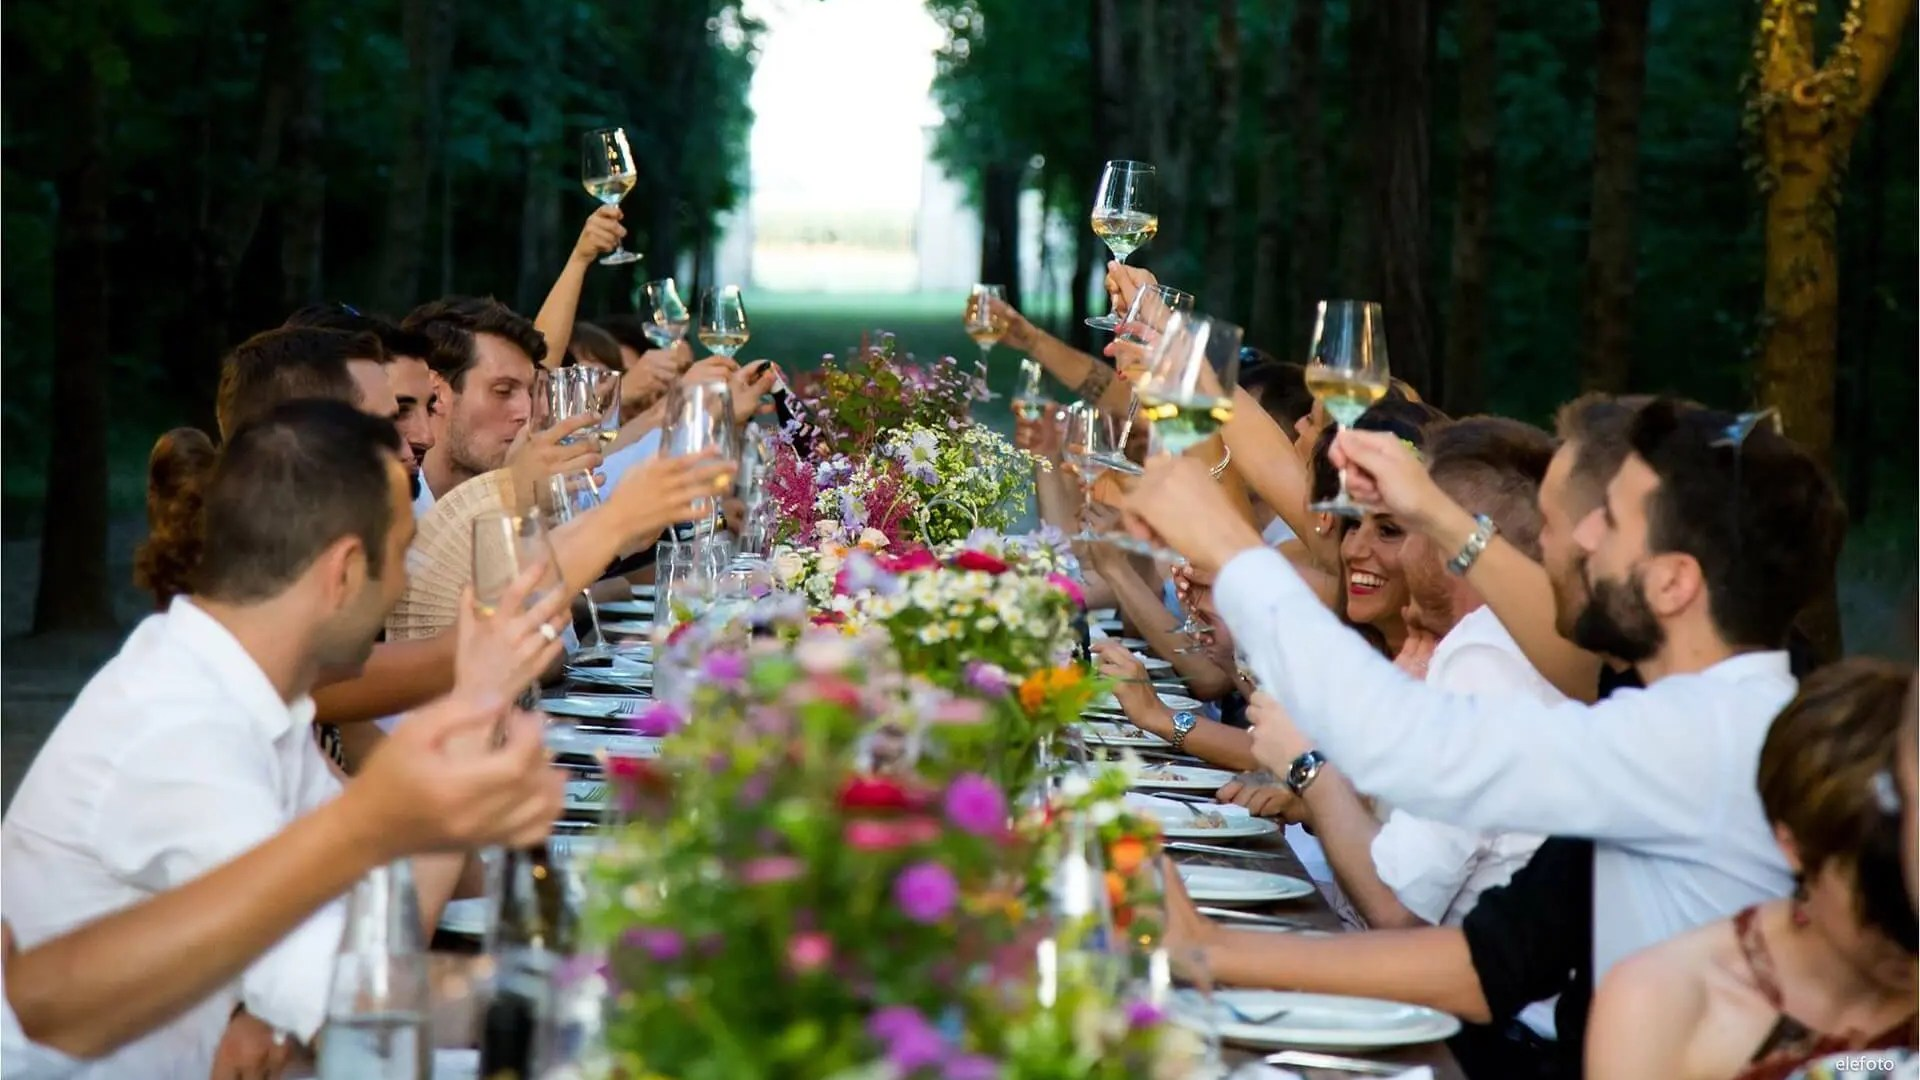 Steps to taking captivating and intriguing party photos 1